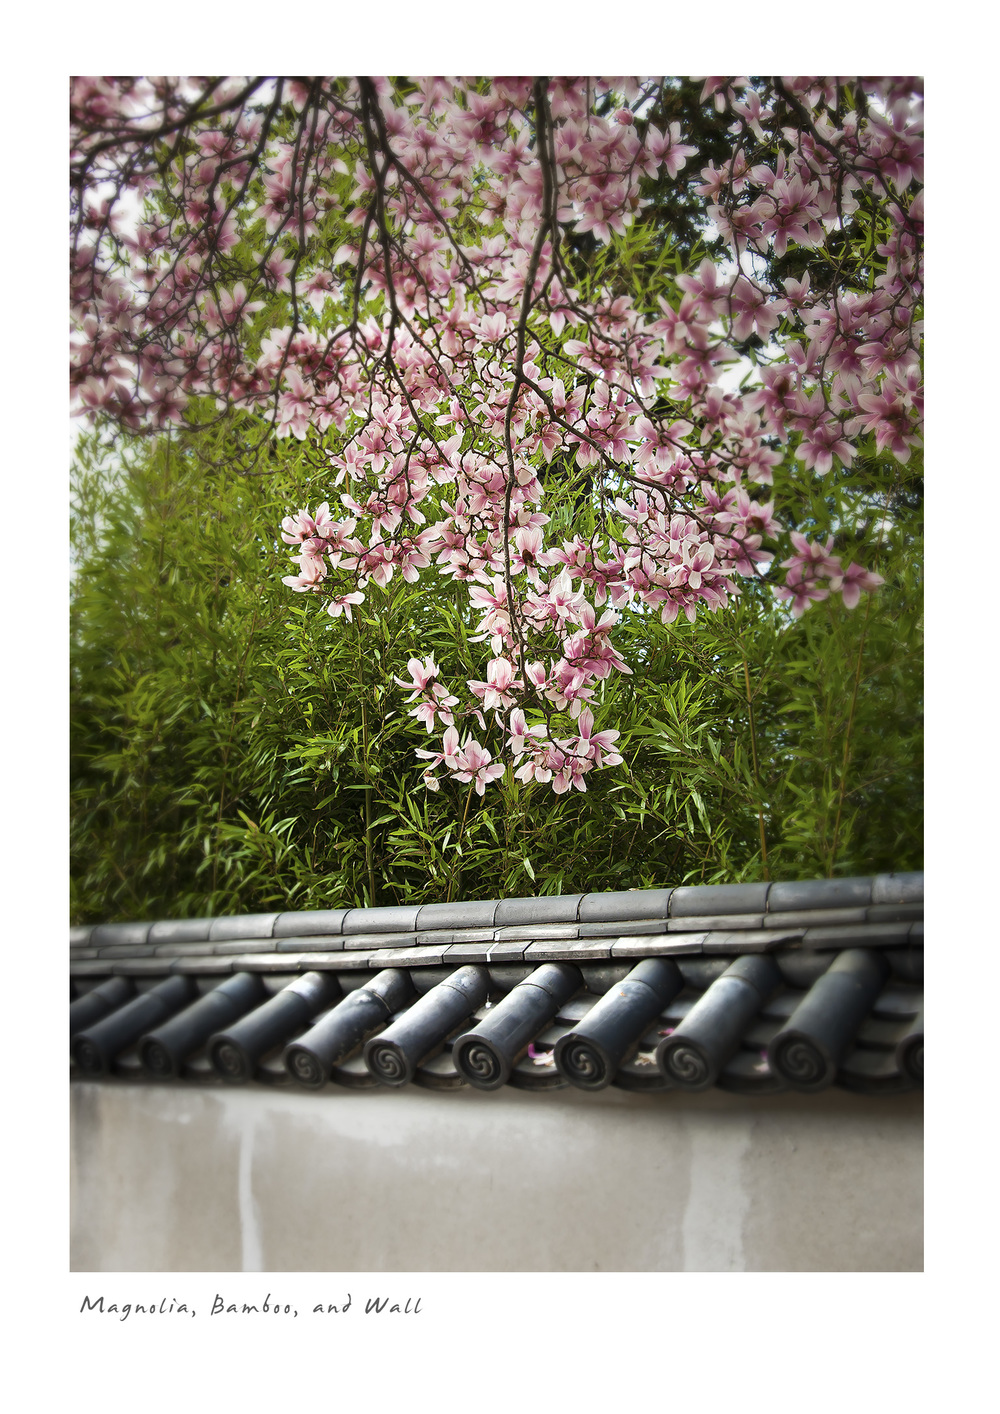 Magnolia, Bamboo, and Wall